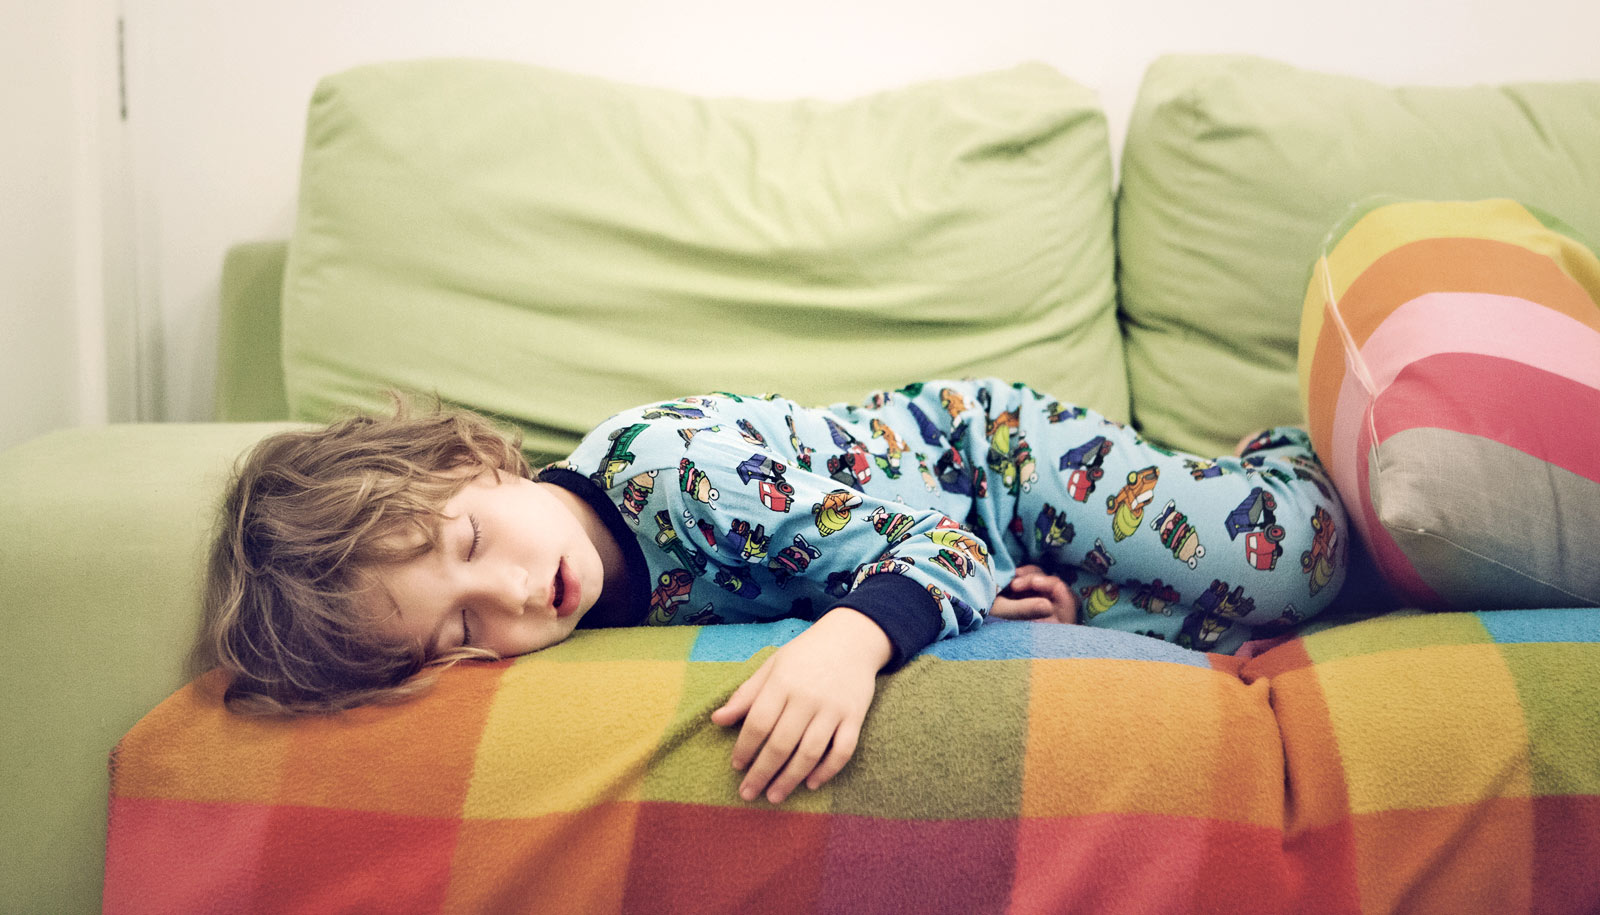 7 signs your child's snoring warrants seeing the doctor - Futurity